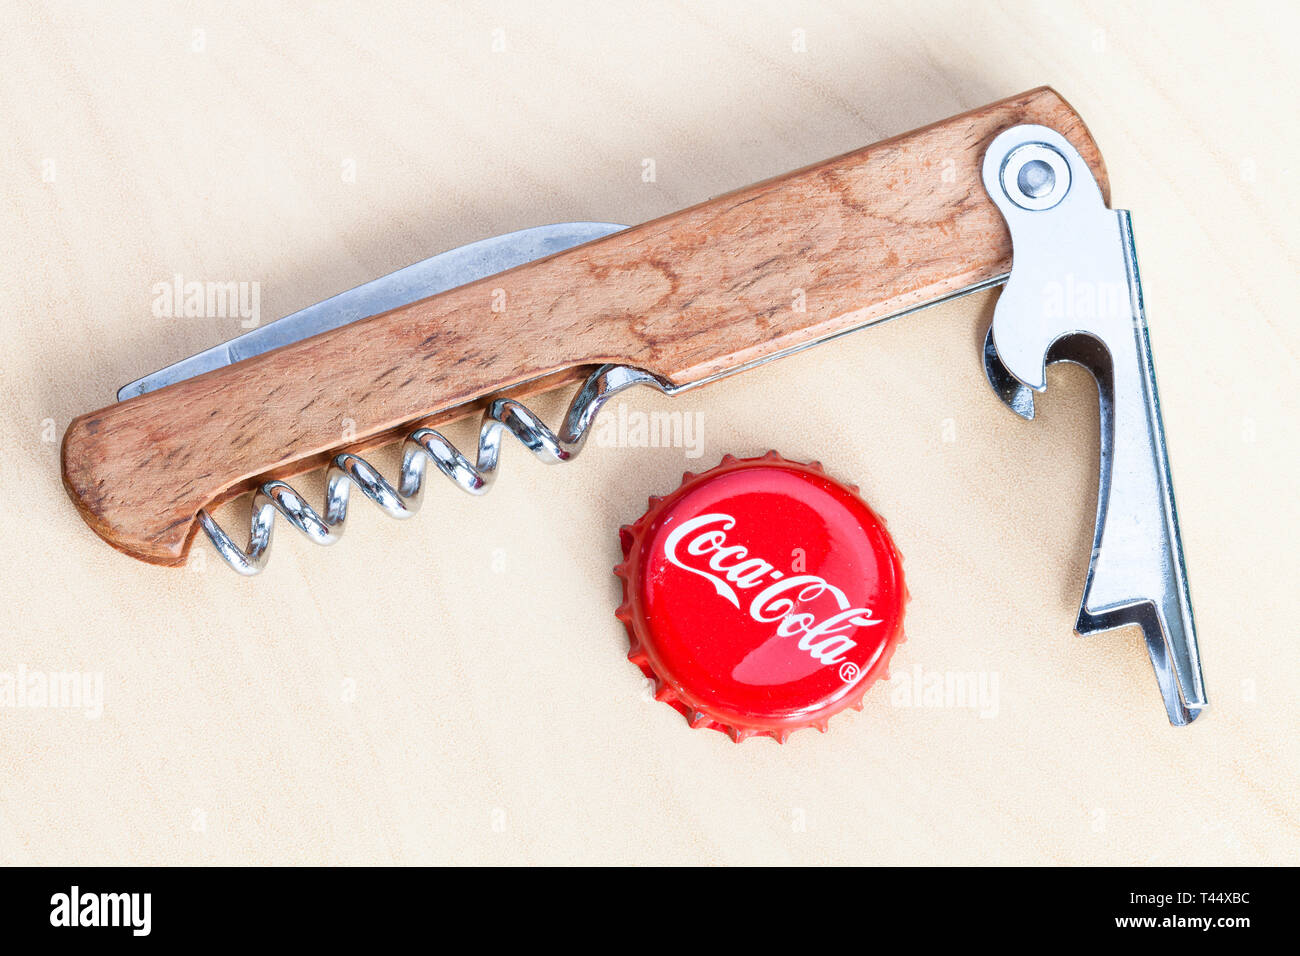 MOSCOW, RUSSIA - APRIL 4, 2019: used crown cork bottle cap from Coca-Cola beverage and bottle opener on wooden board. Coca-Cola (Coke) is carbonated s - Stock Image